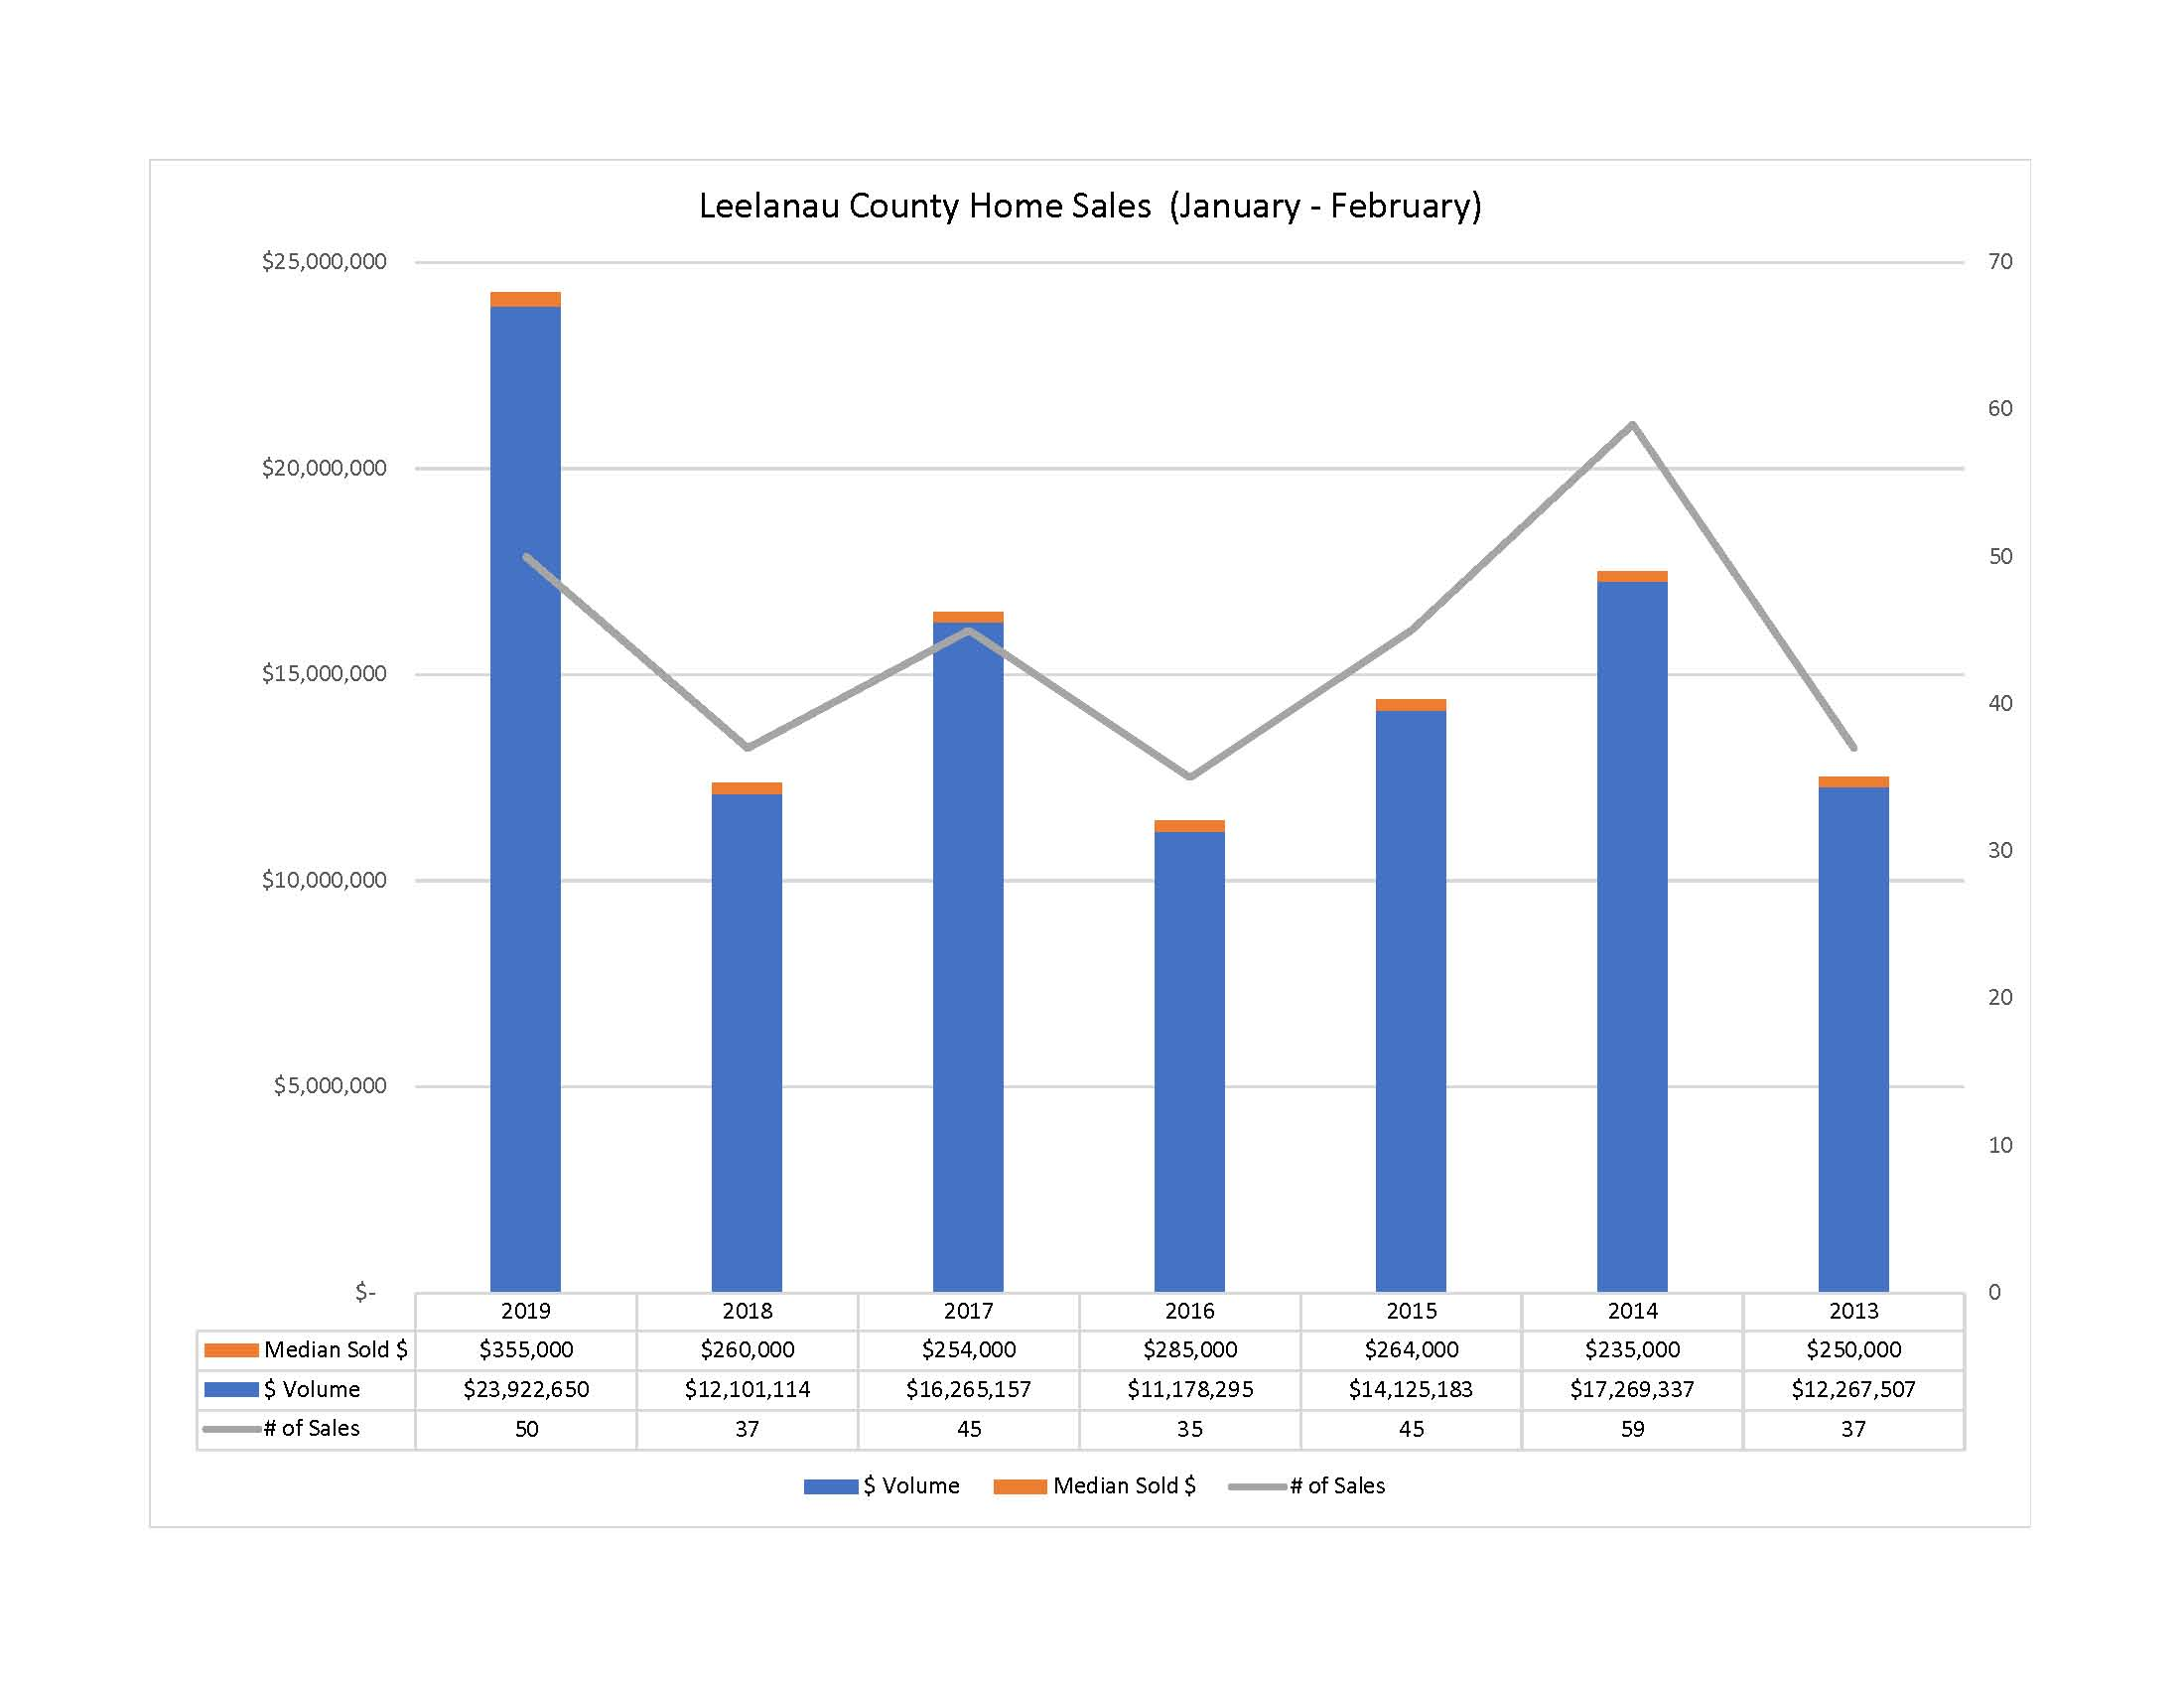 Leelanau County Home Sales